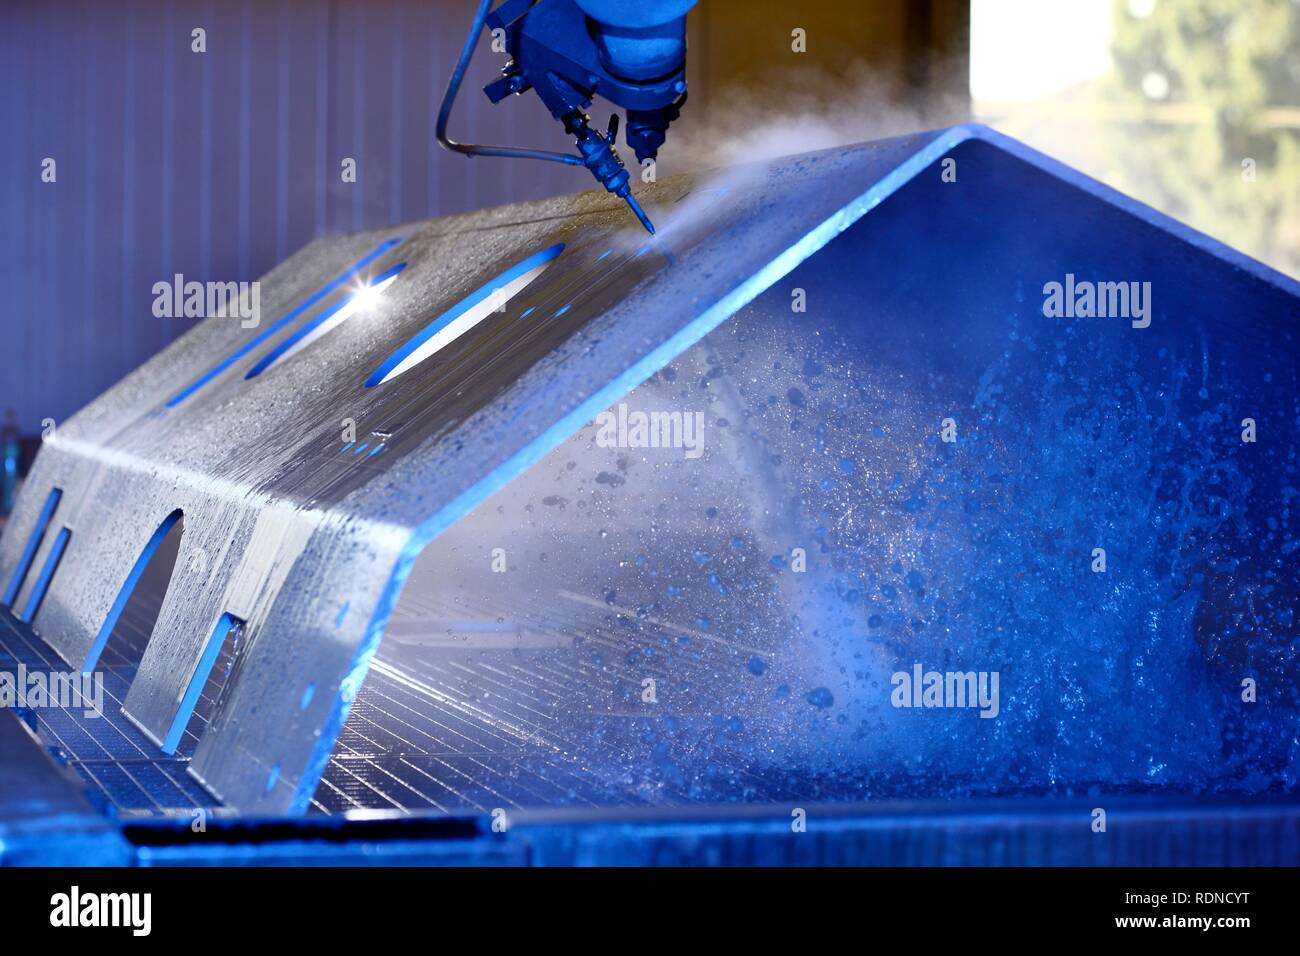 Water jet technology, precise technology for cutting metal with a high pressure water jet, where an abrasive material is added - Stock Image